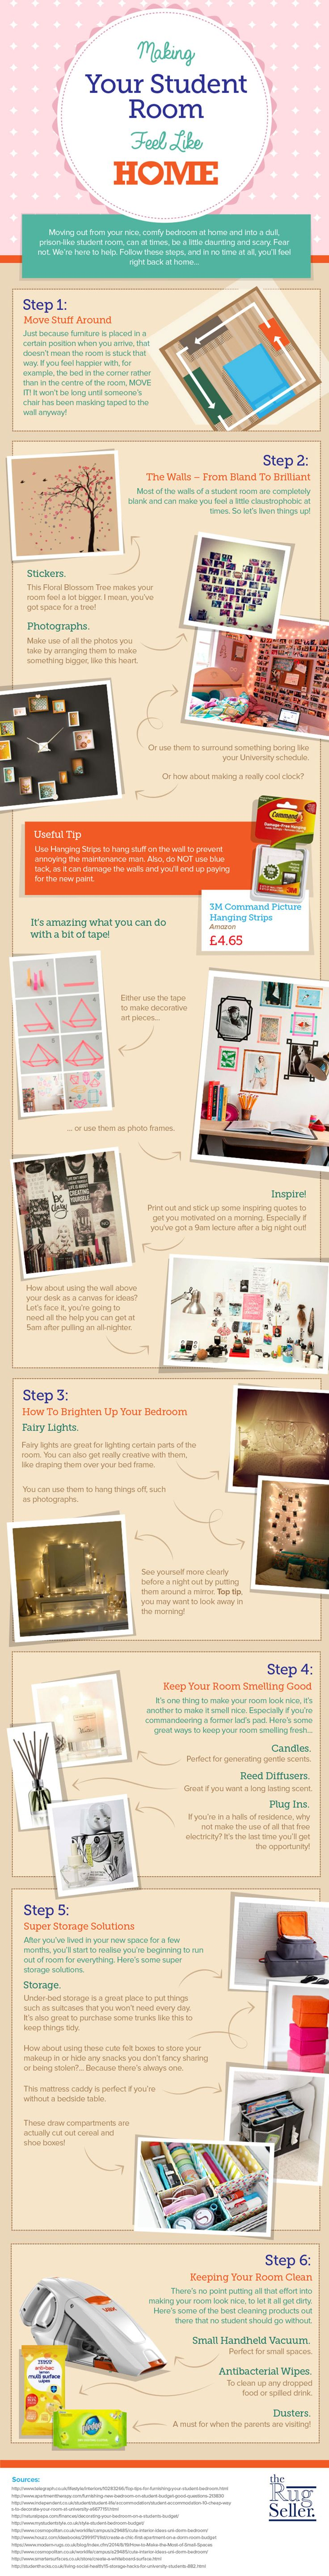 Moving out from your nice, comfy bedroom at home and into a dull, prison-like student room, can at times, be a little daunting and scary. However, The Rug Seller has come up with some fantastic ways to instantly make your student space into your new home and put them together in the following infographic.